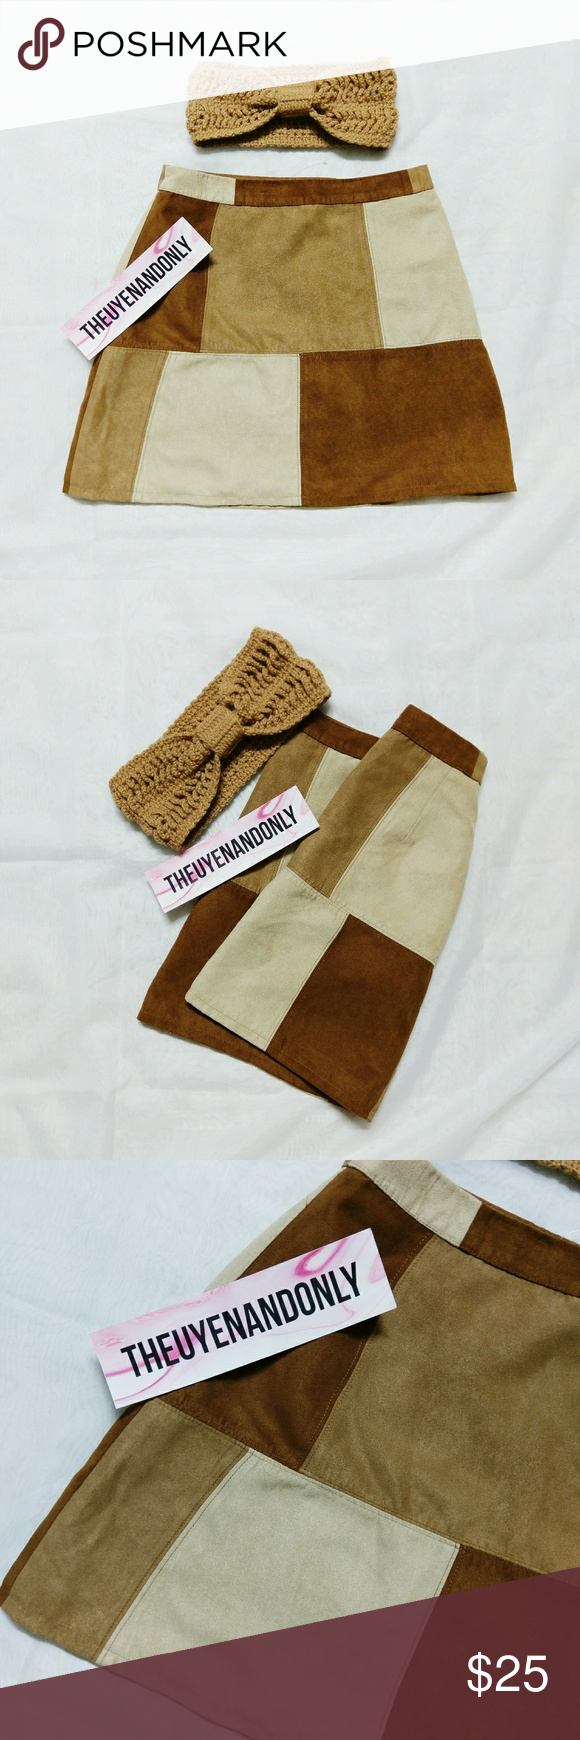 f2fba5c48 NWOT Hollister Patch Suede Skirt + FREE GIFT NEW WITHOUT TAG Hollister  Suede Skirt NEVER WORN FREE GIFT: Handmade Headband FREE SHIP is available.